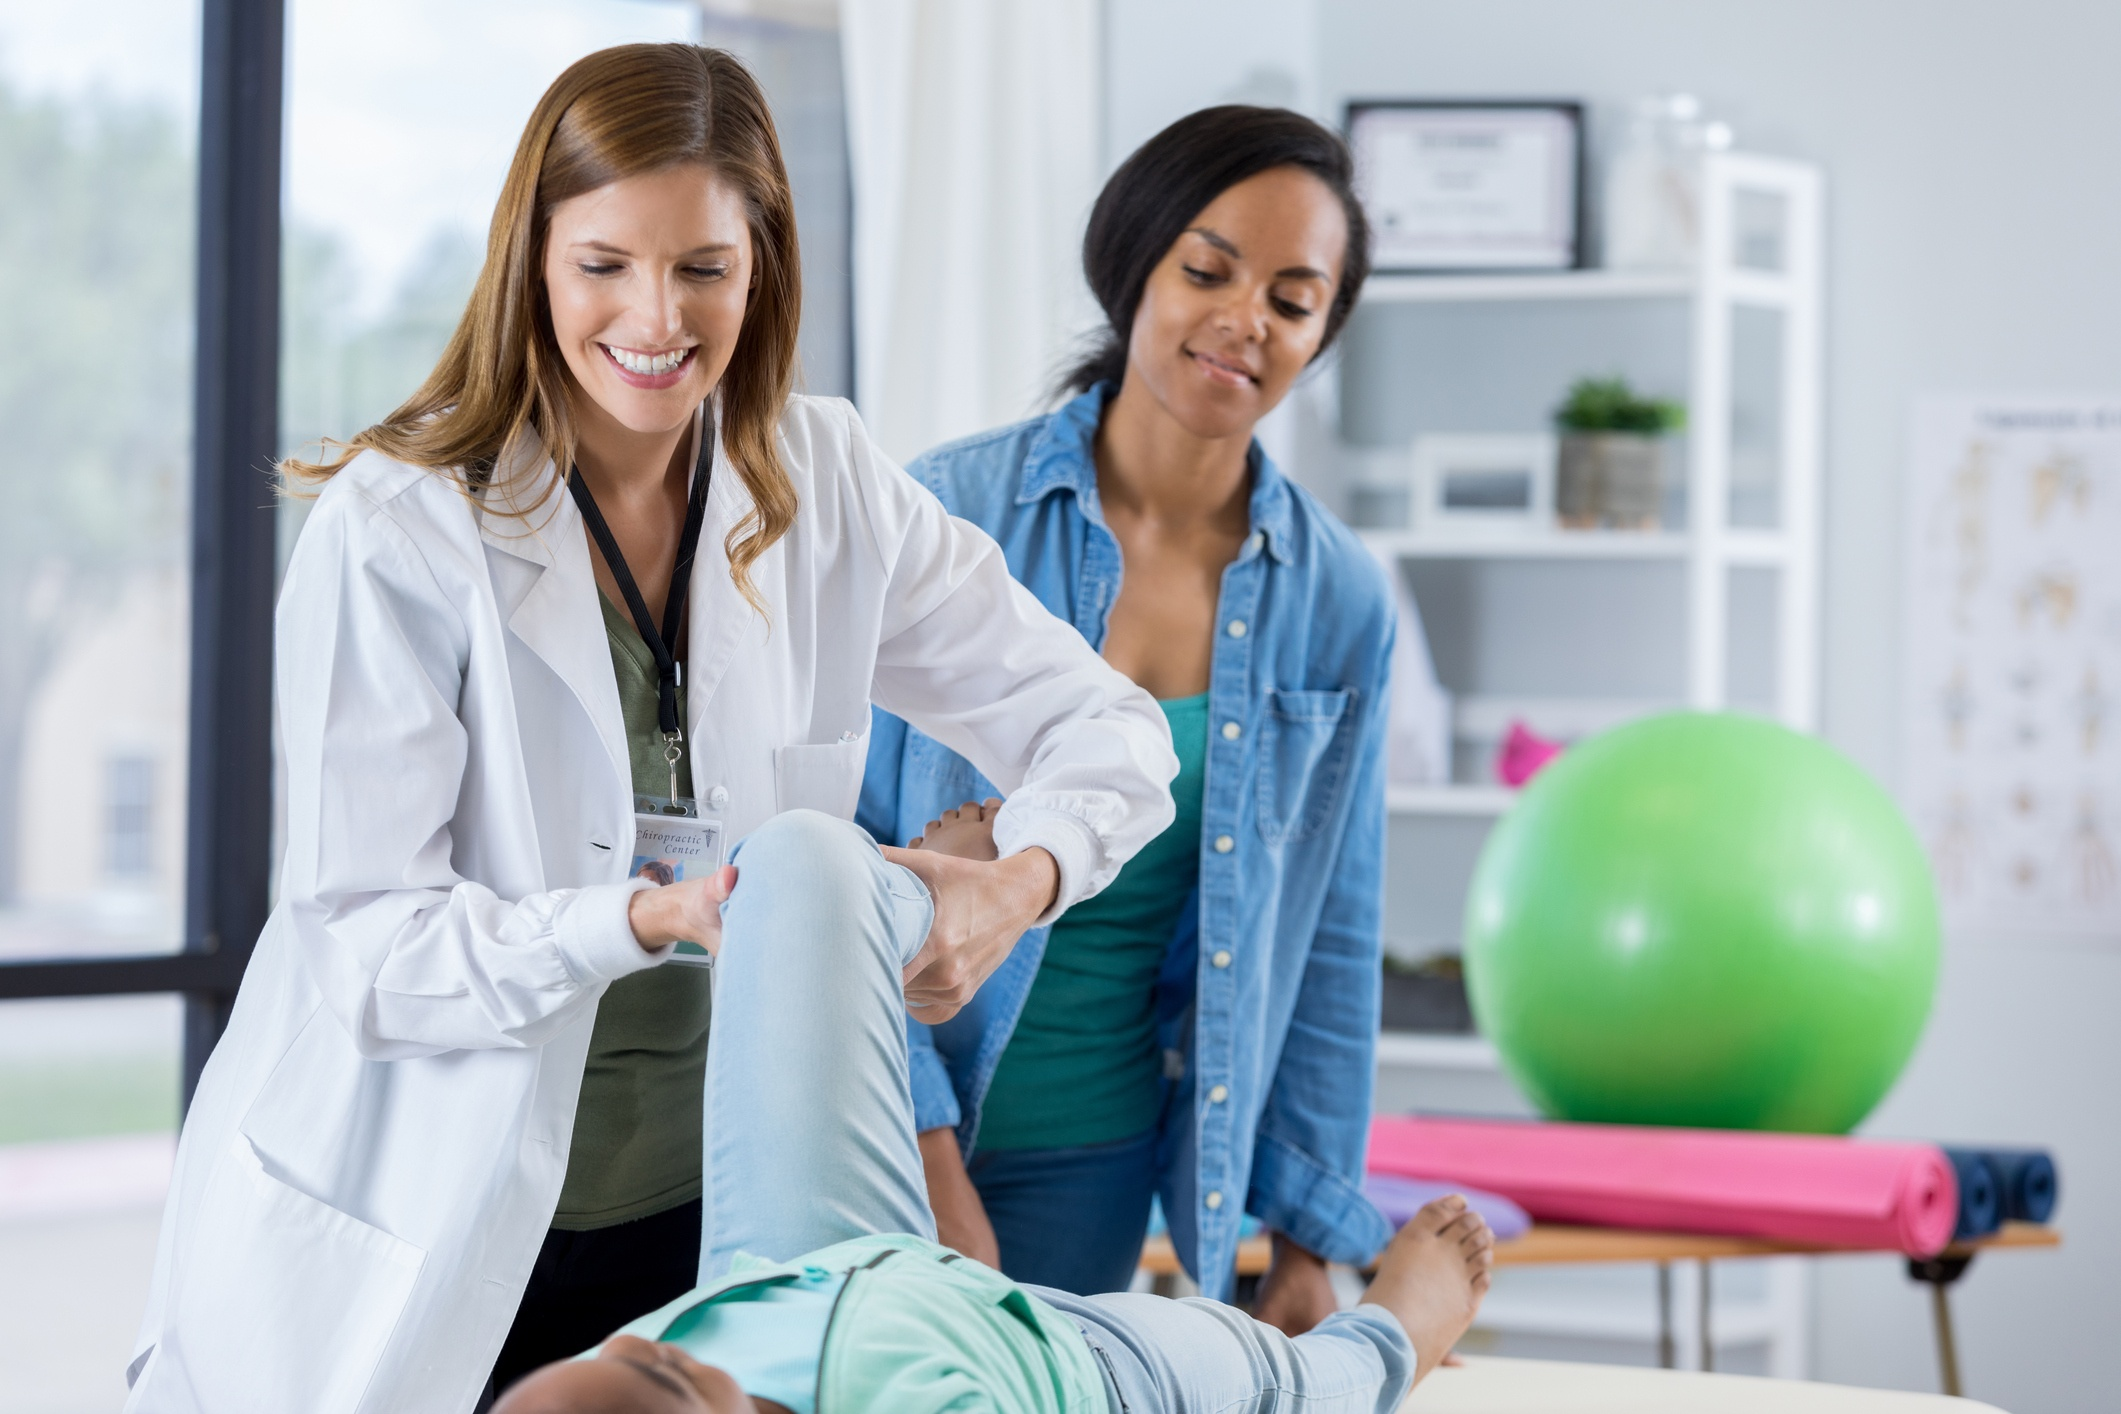 3 Reasons to Choose NUHS for Your Chiropractic Education